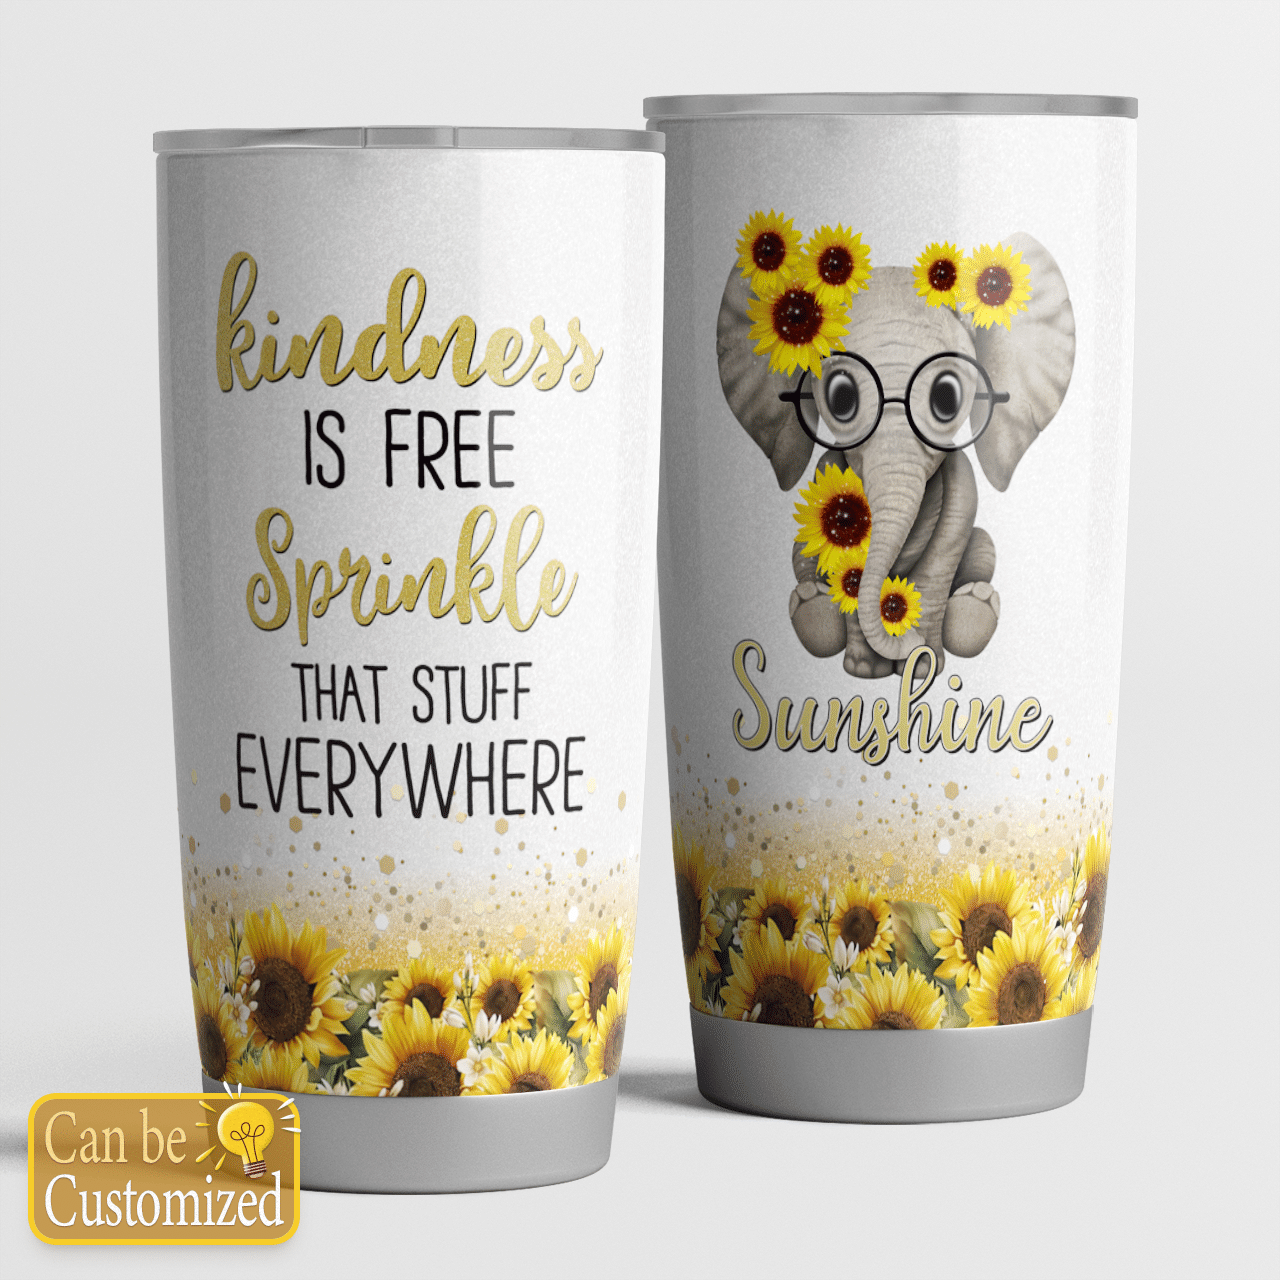 Kindness is free sprinkle that stuff everywhere